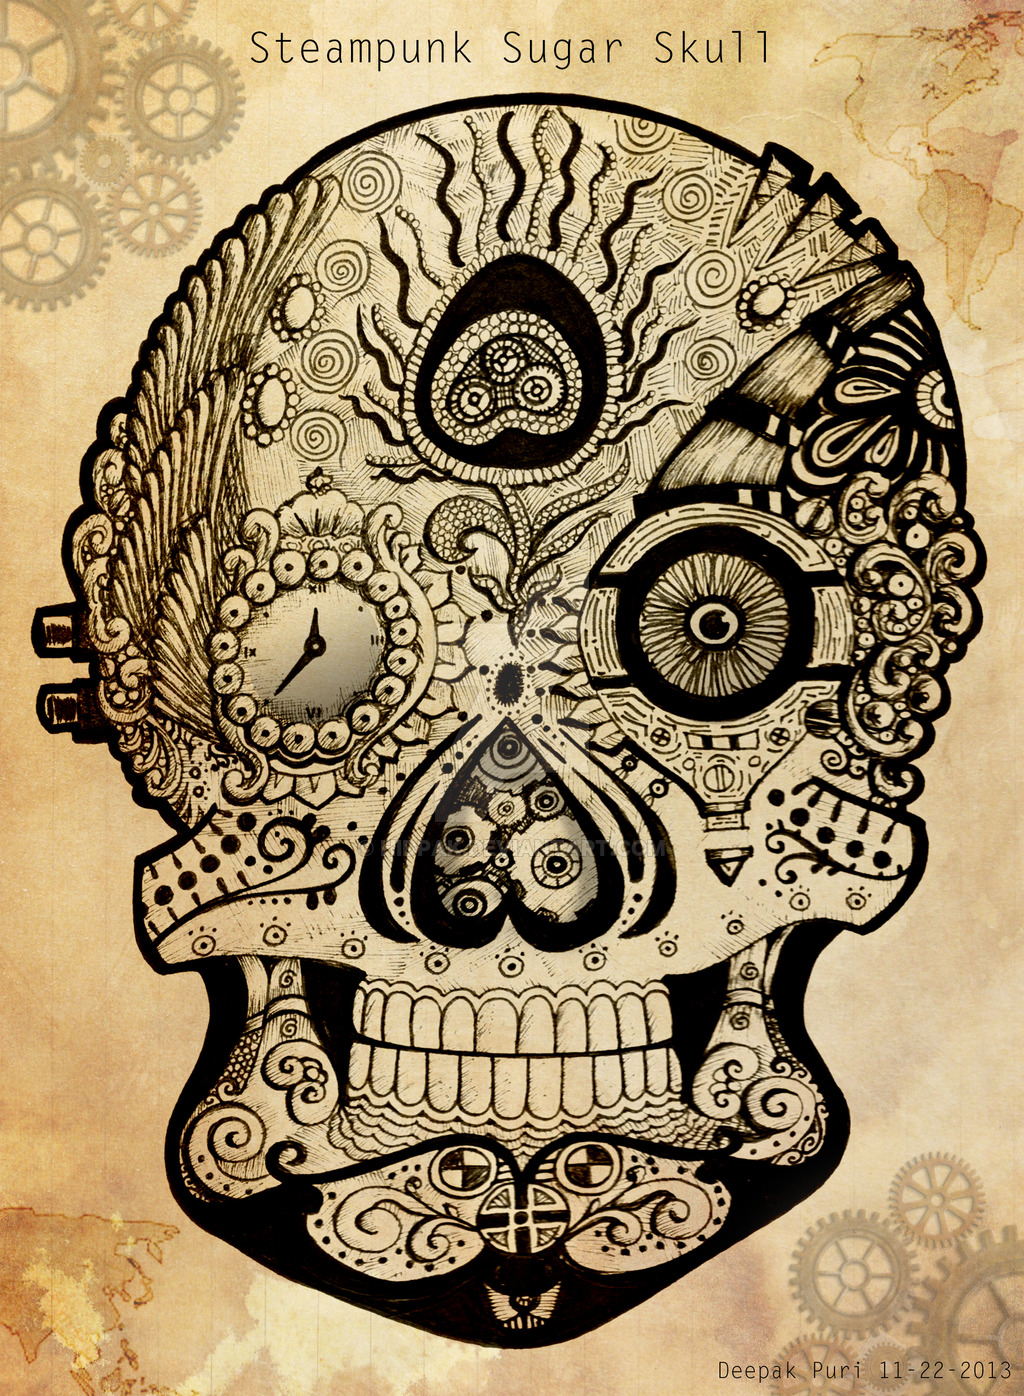 Drawn skull steampunk Skull by hidpak on Sugar